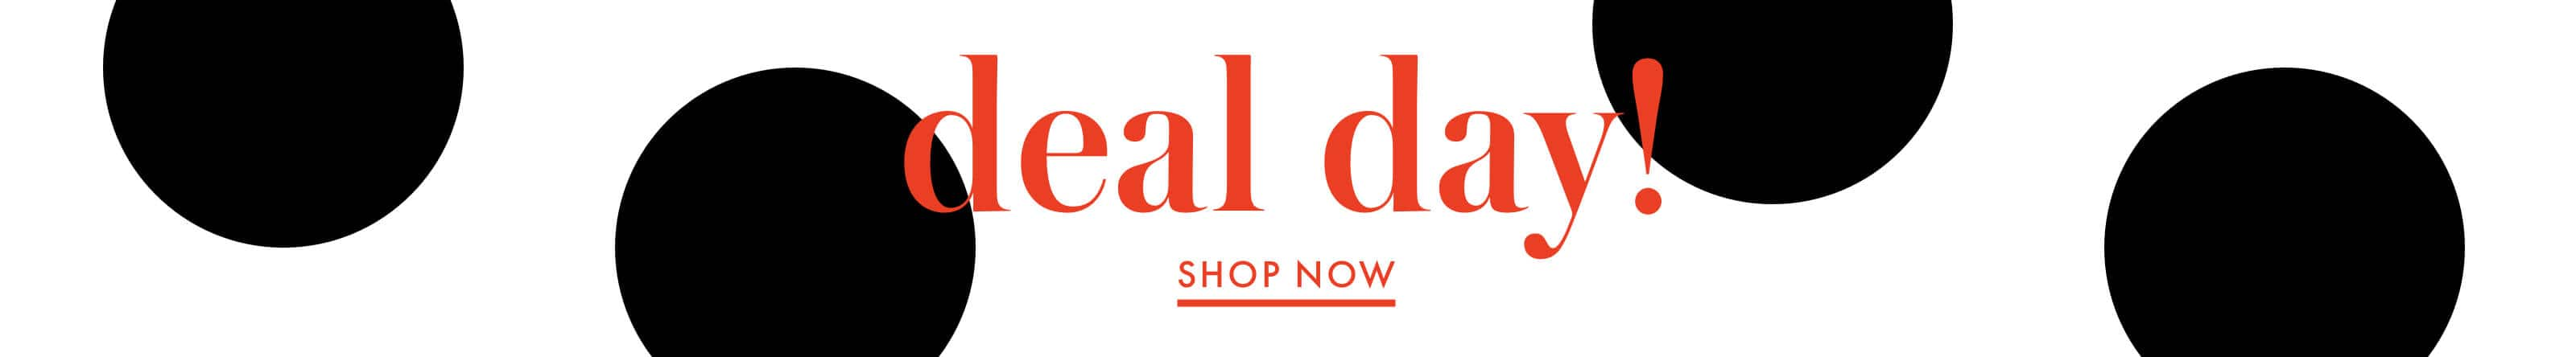 deal day! shop now